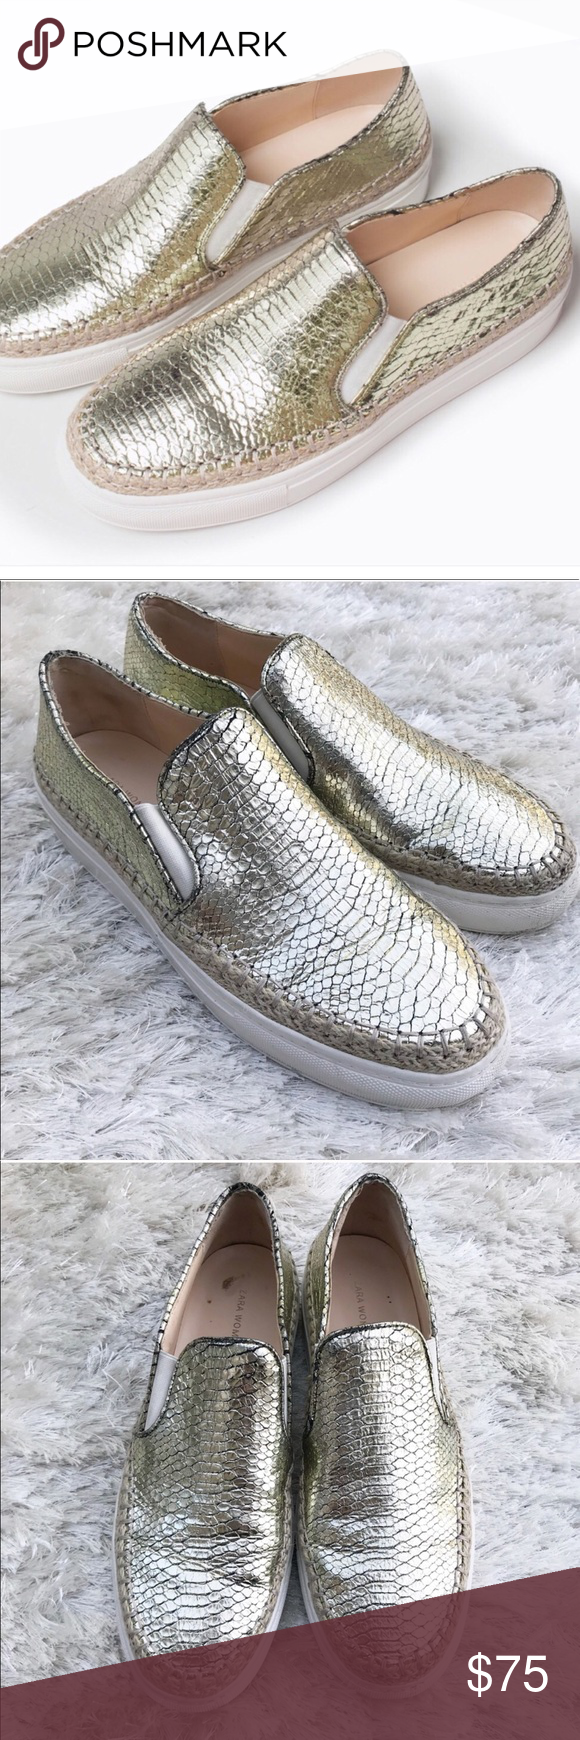 ZARA Gold pattern Espadrille slip on sneakers Gold shinny leather snakeskin  croc embossed pattern slip on flats with white platform sole. e2aa5c658ba